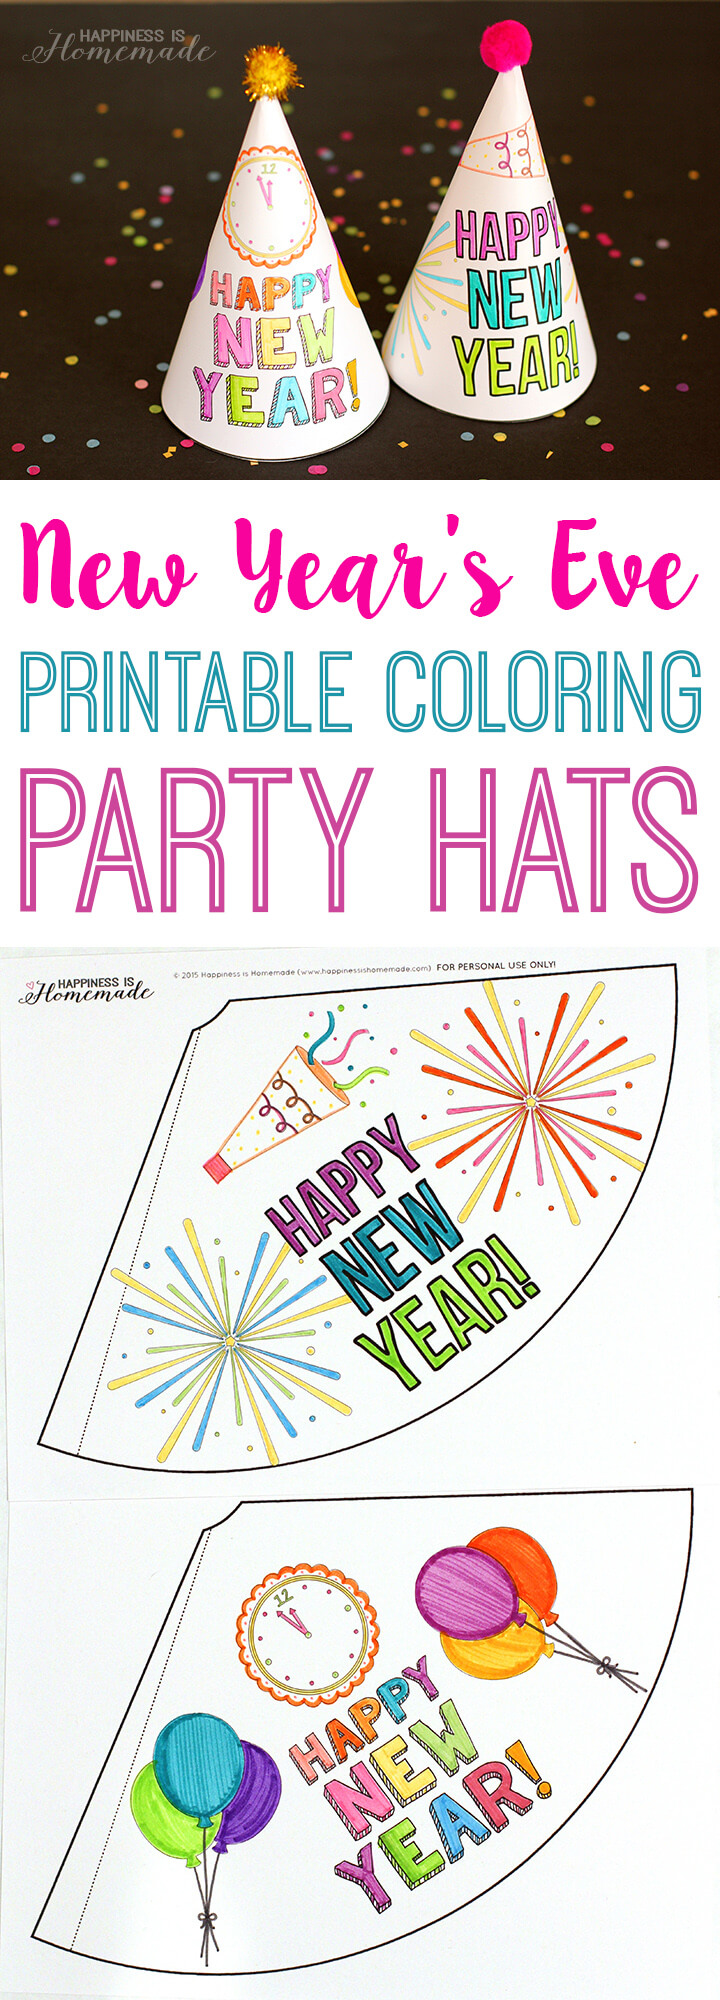 Printable Coloring Party Hats for New Year's Eve Kid Parties